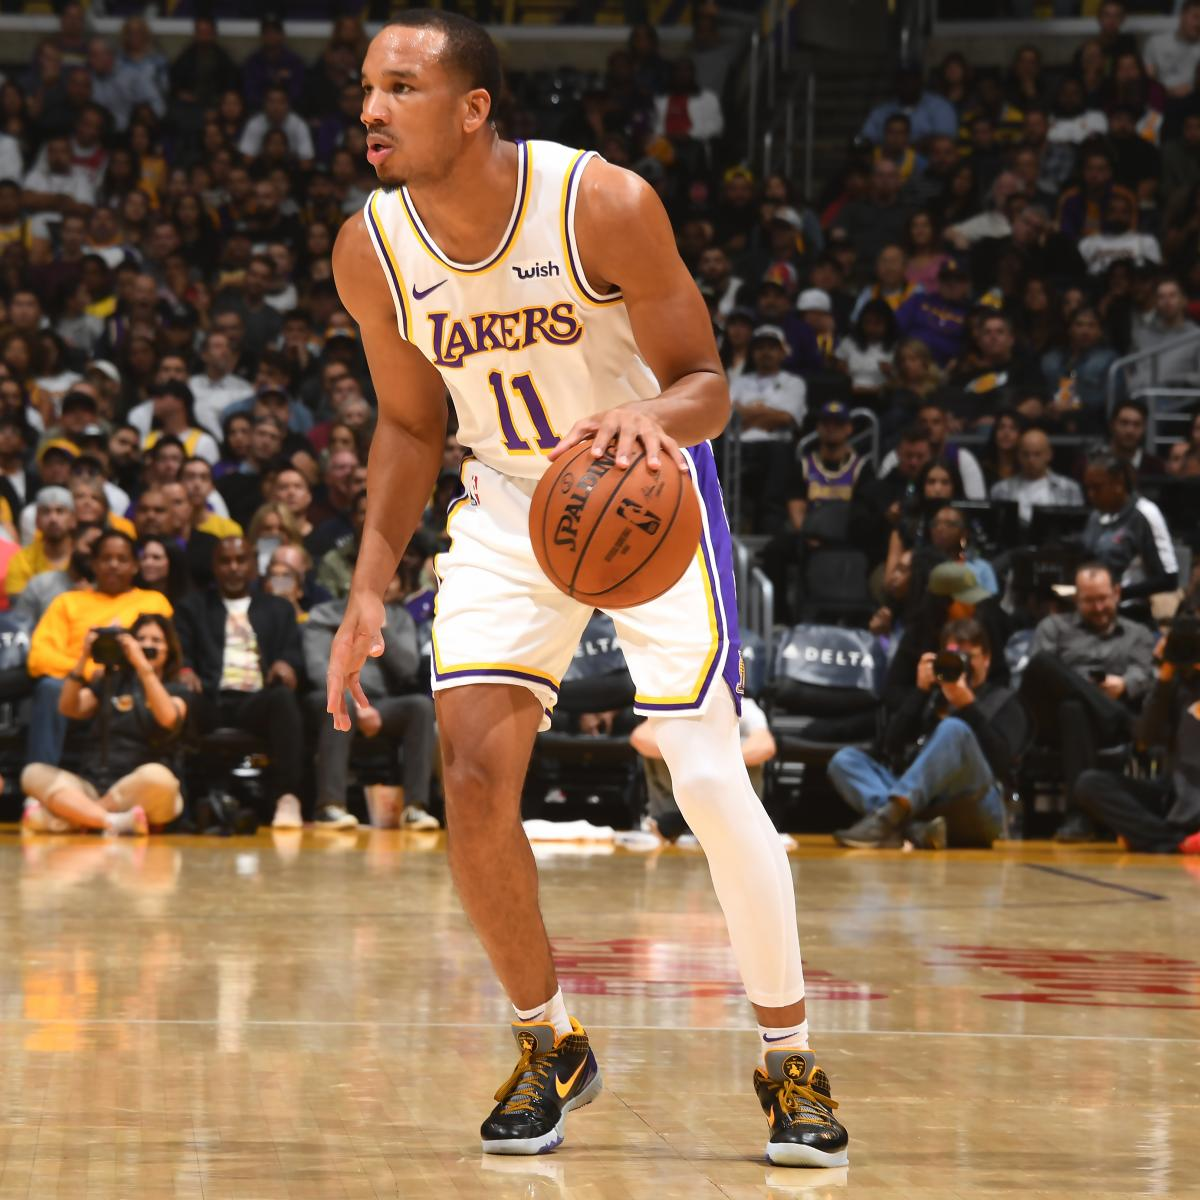 Lakers News: Avery Bradley to Be Re-Evaluated in 1-2 Weeks After Leg Injury